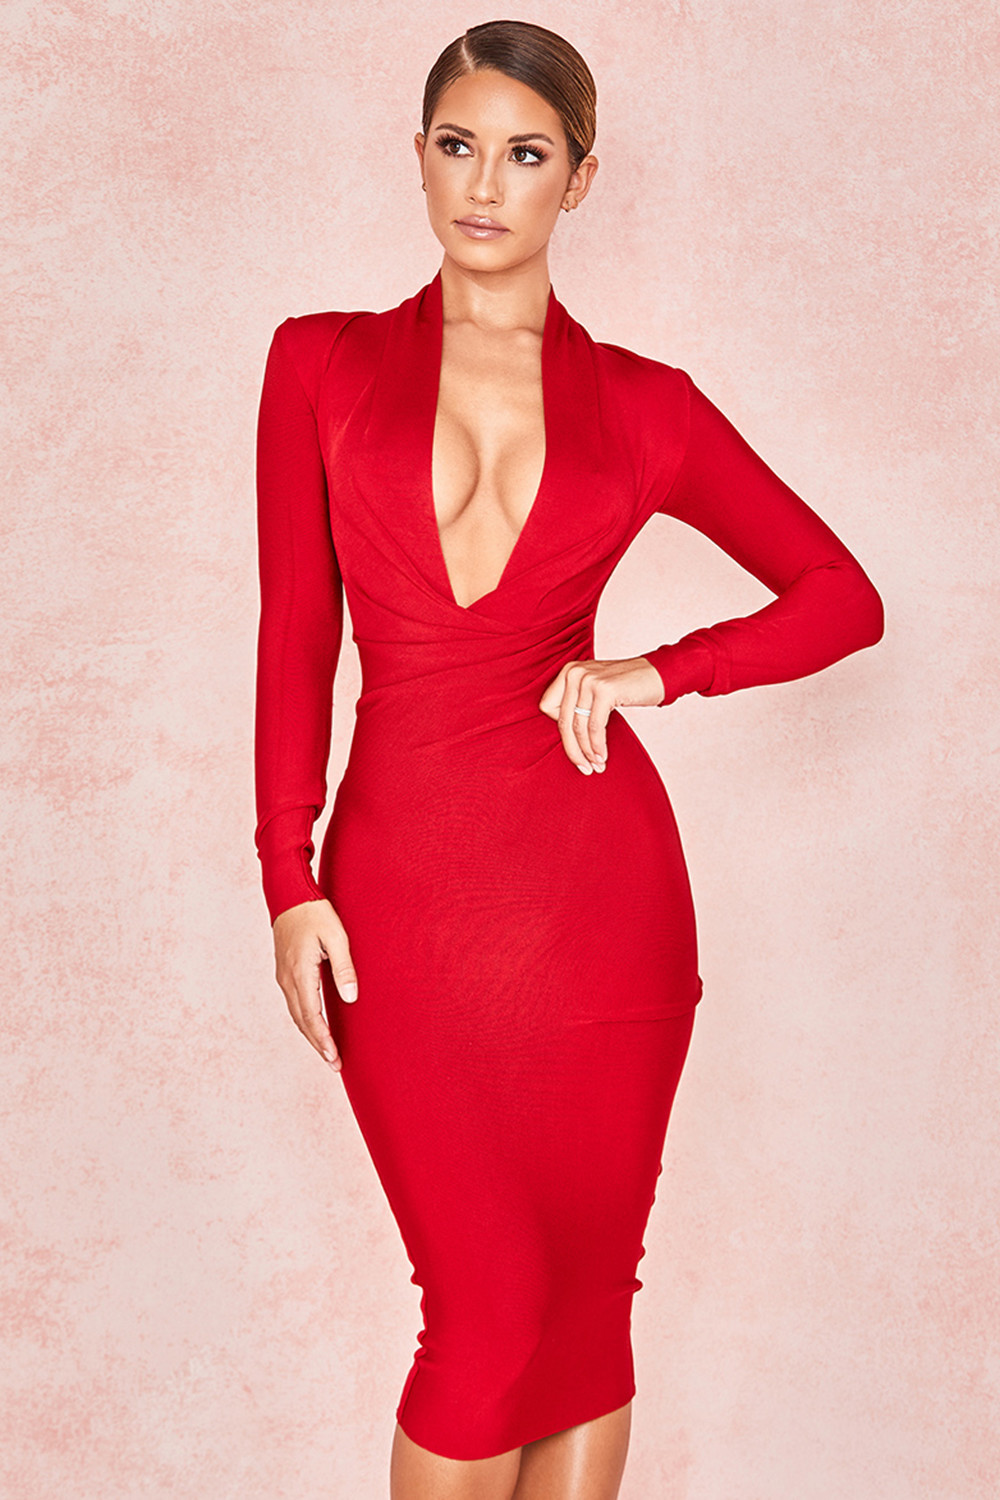 KLEEZY New Fashion Sexy Party Stand Deep V-Neck Full Sleeve Bodycon Mid-Calf Club Sheath Bandage Dress 6 Color HL4033